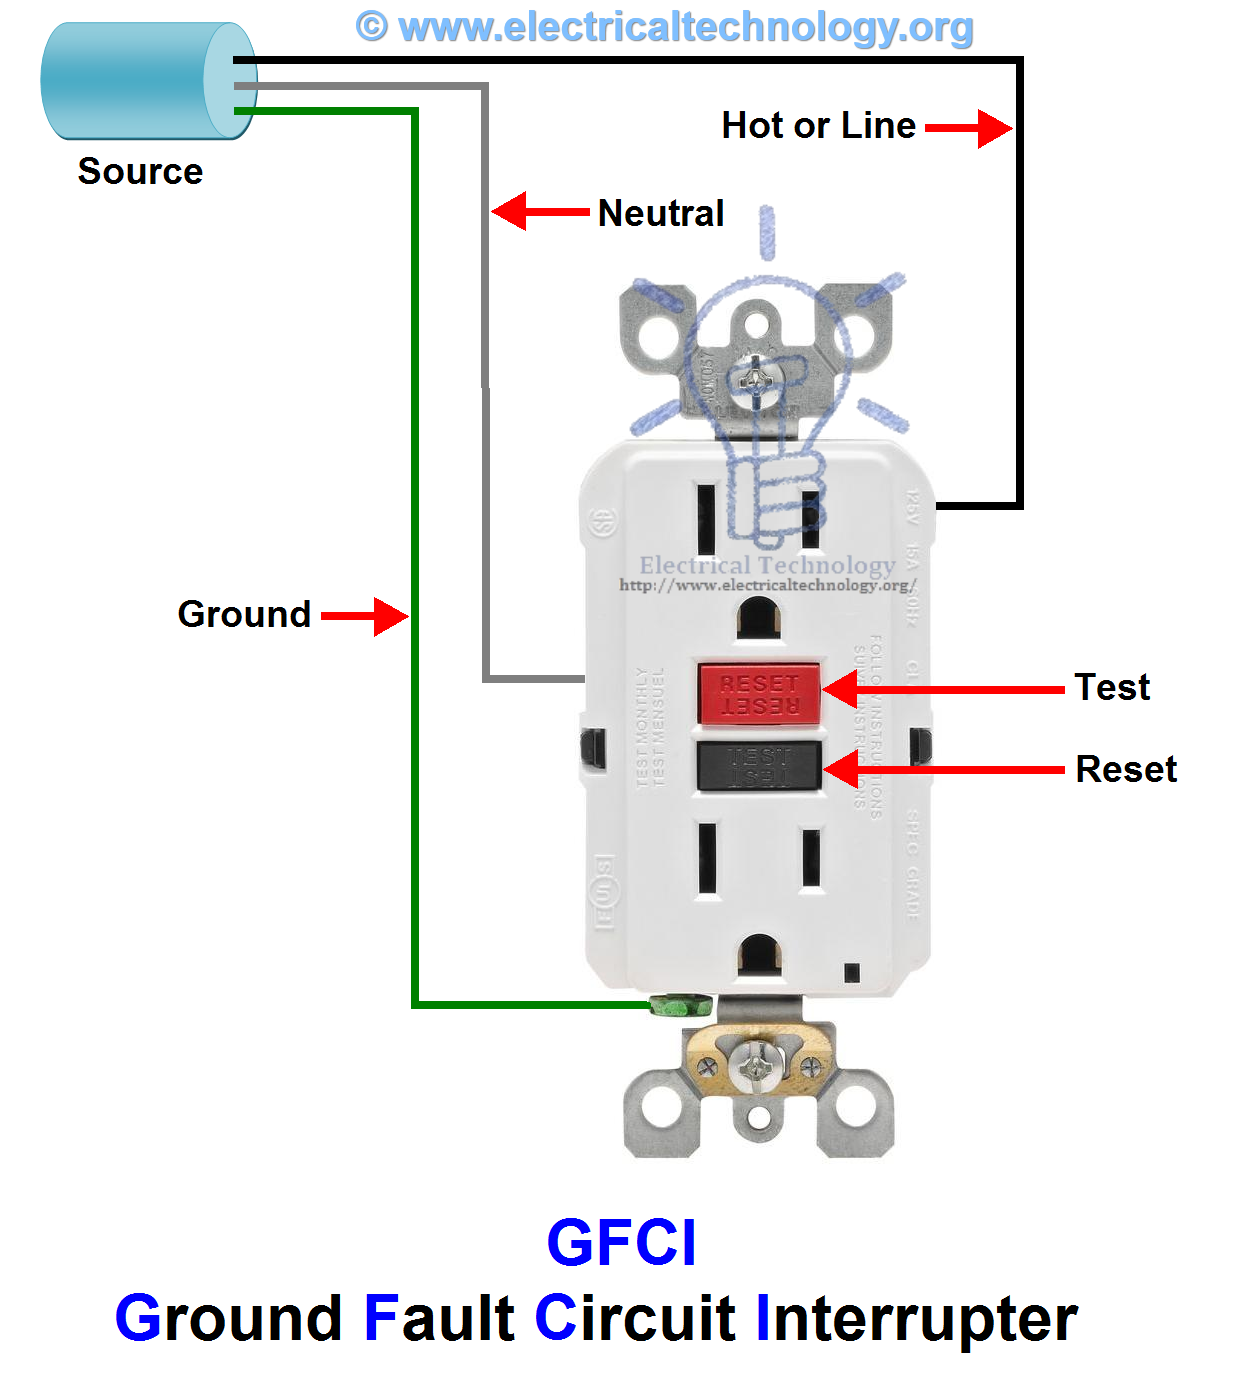 Gfci ground fault circuit interrupter types working circuits gfci ground fault circuit interrupter types working sciox Image collections